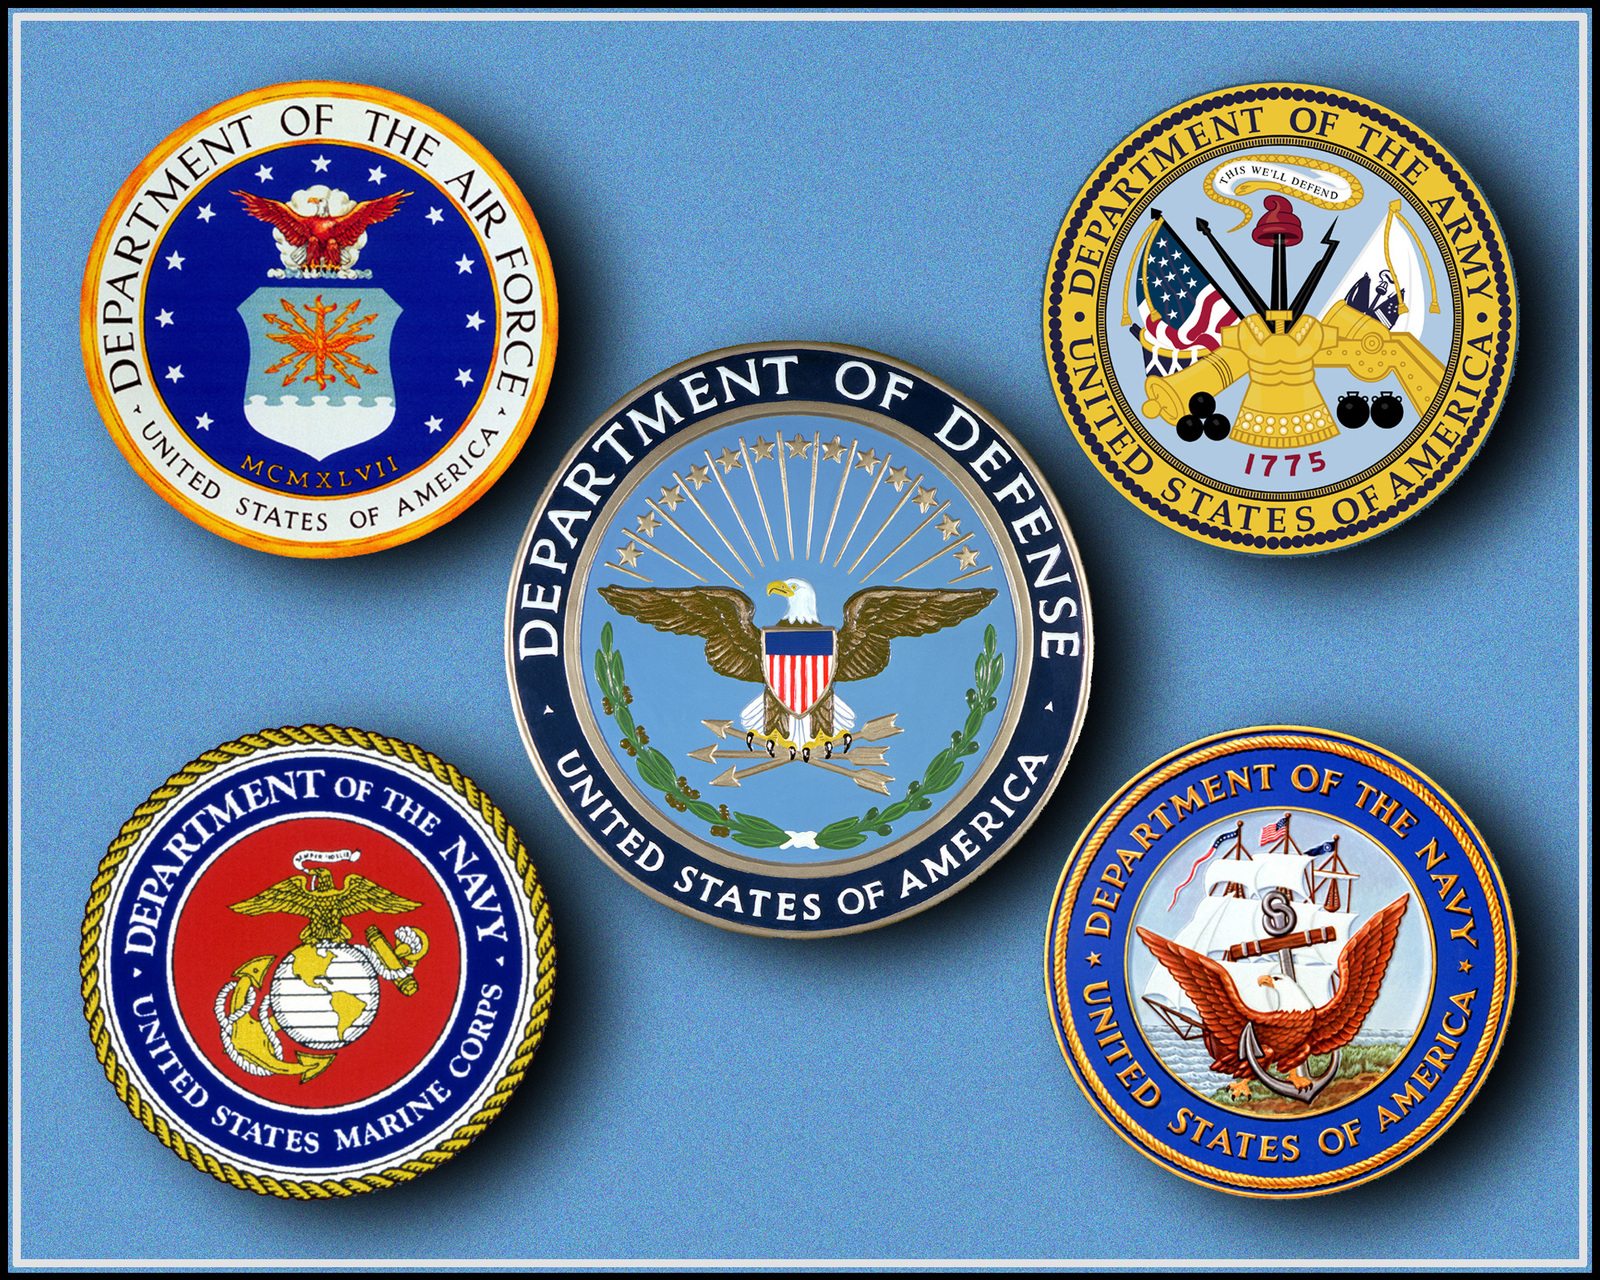 Seal of the Department of Defense (center) with the seals of the four services (clockwise from upper left) United States Air Force, United States Army, United States Navy, and United States Marine Corps